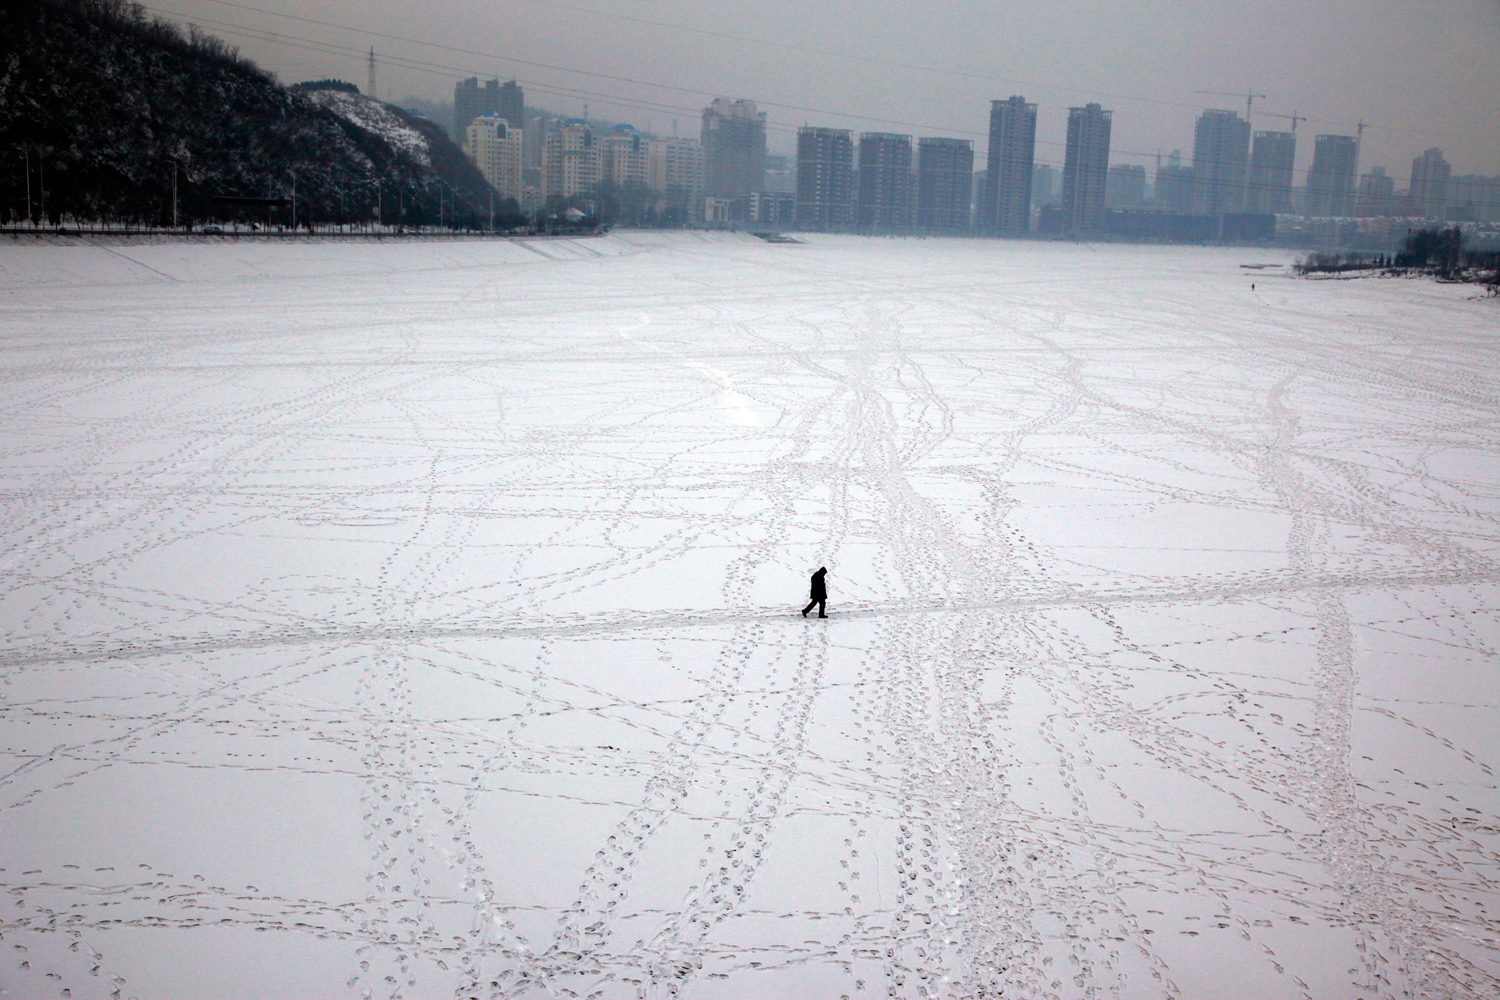 January 24, 2011. A man walks across a frozen river in Benxi, northeastern China's Liaoning province.